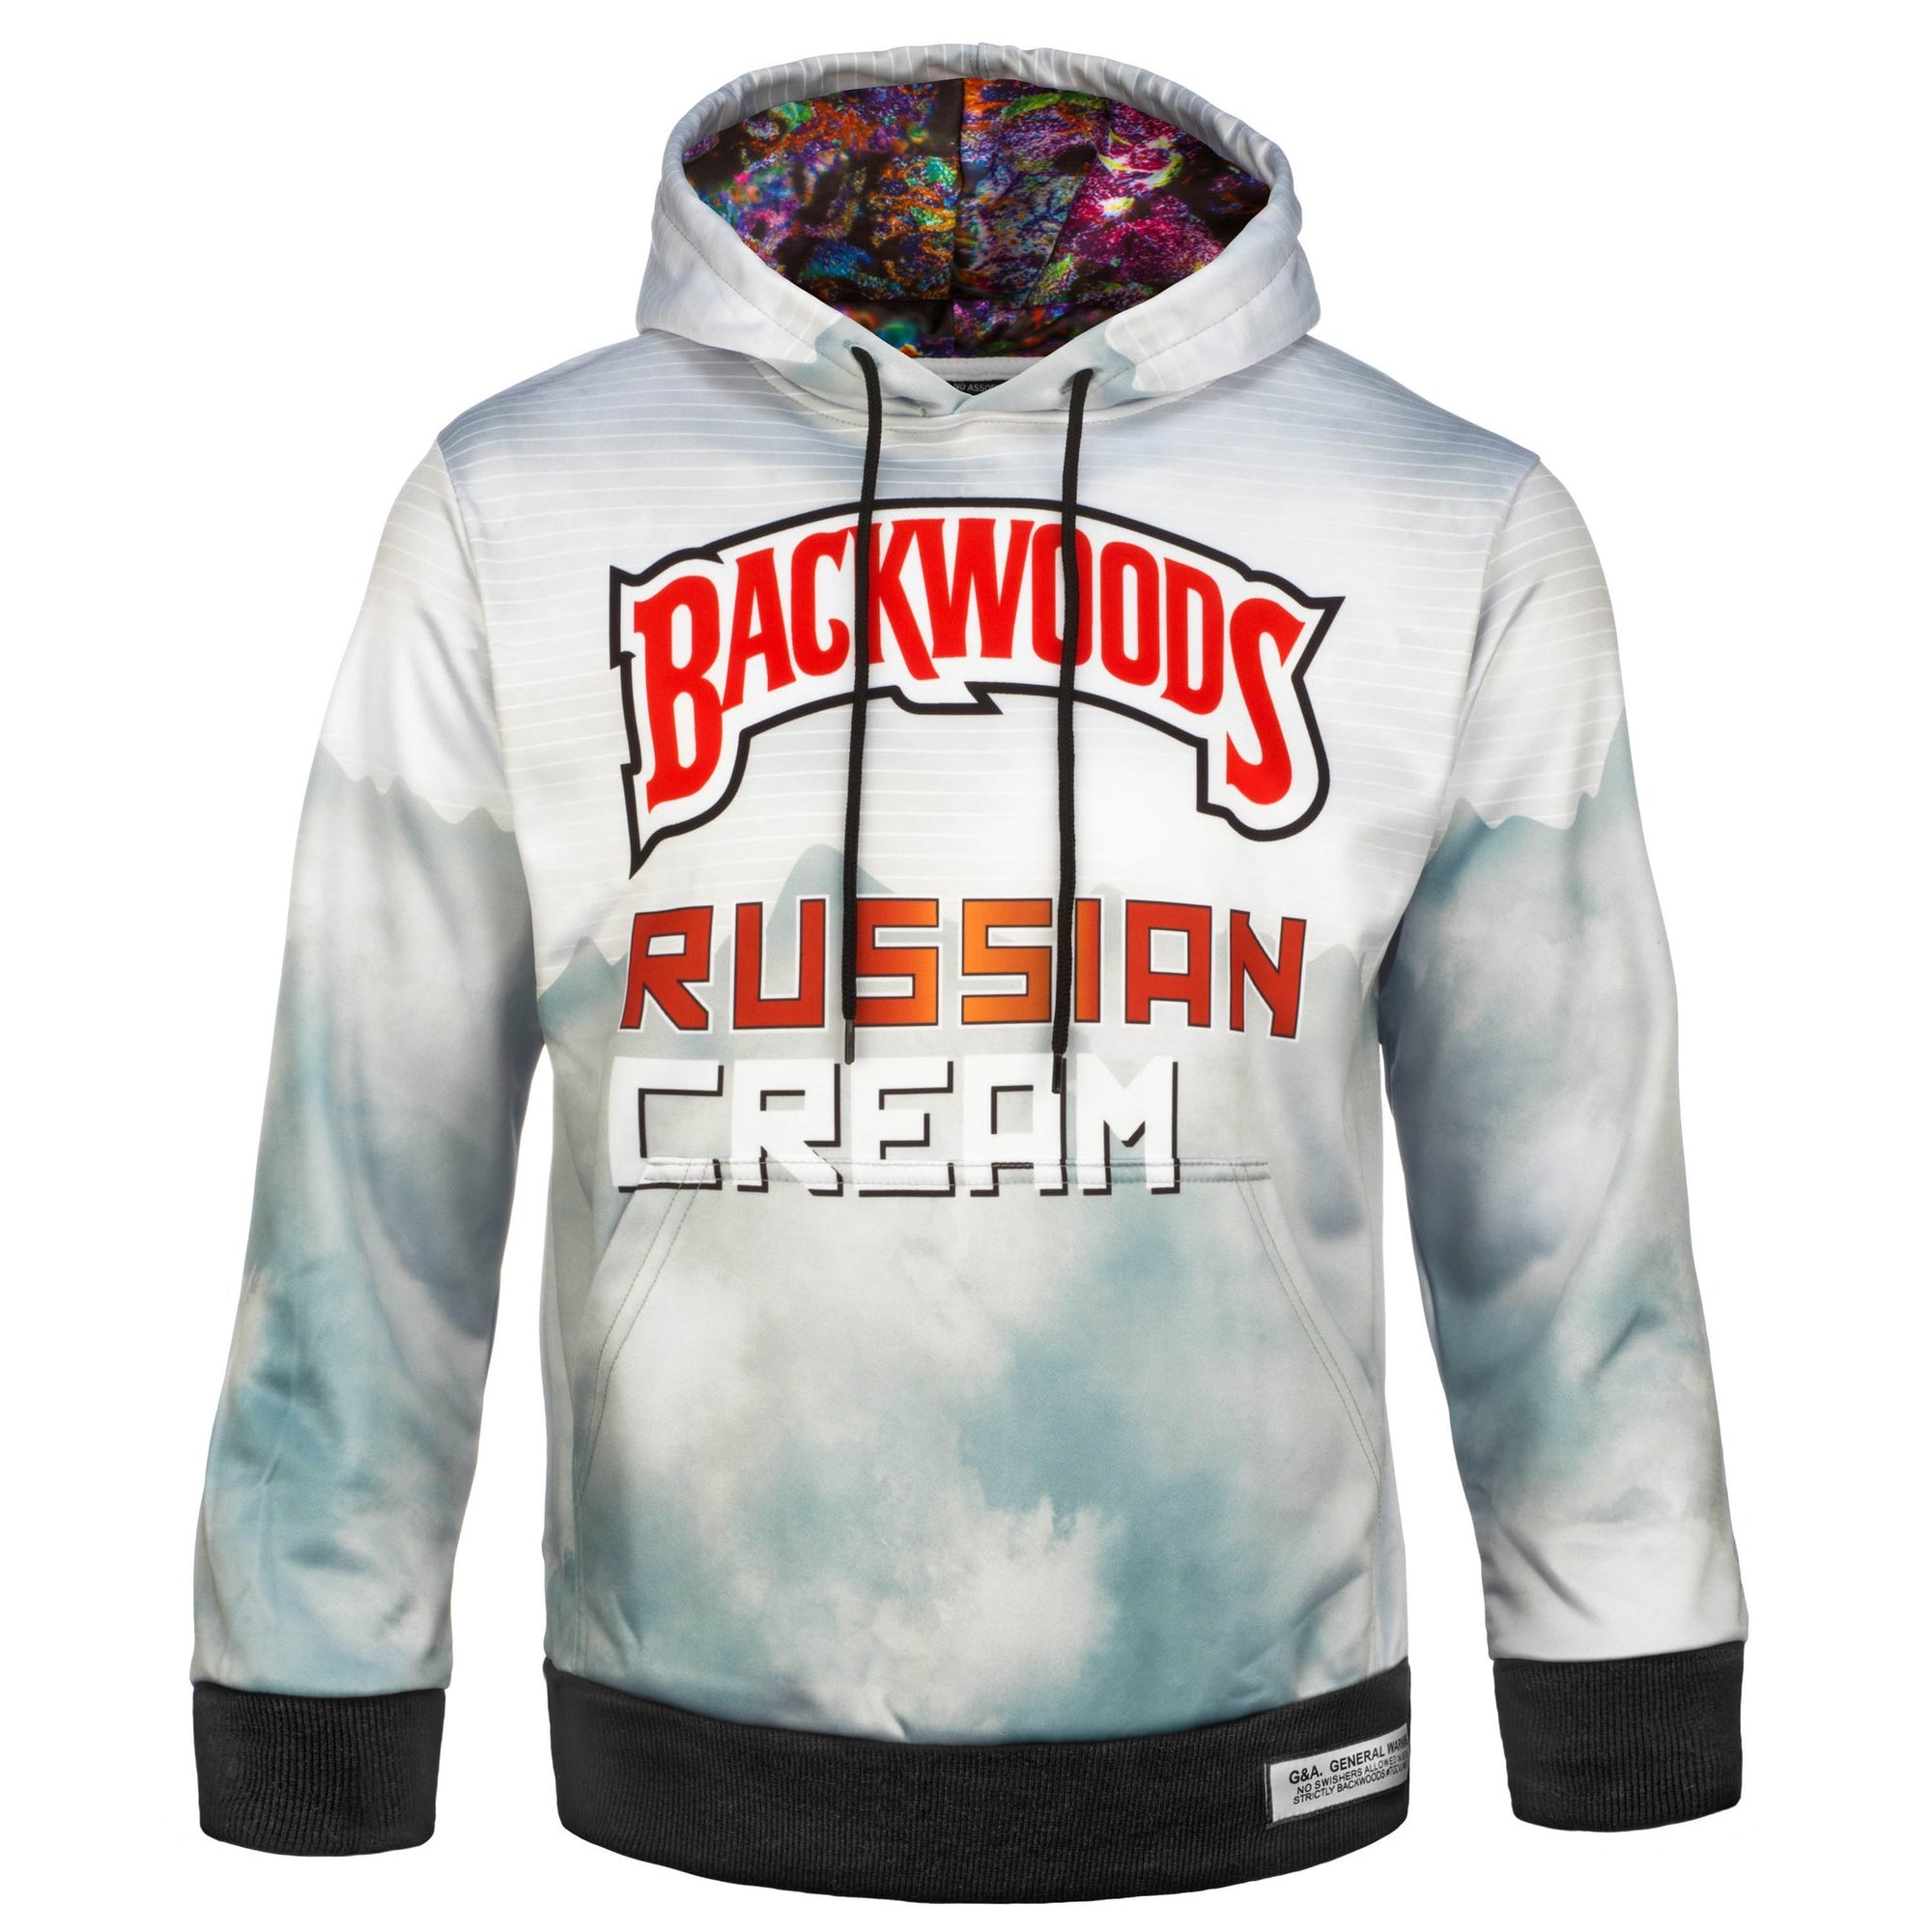 Russian Cream Backwoods Hoodie